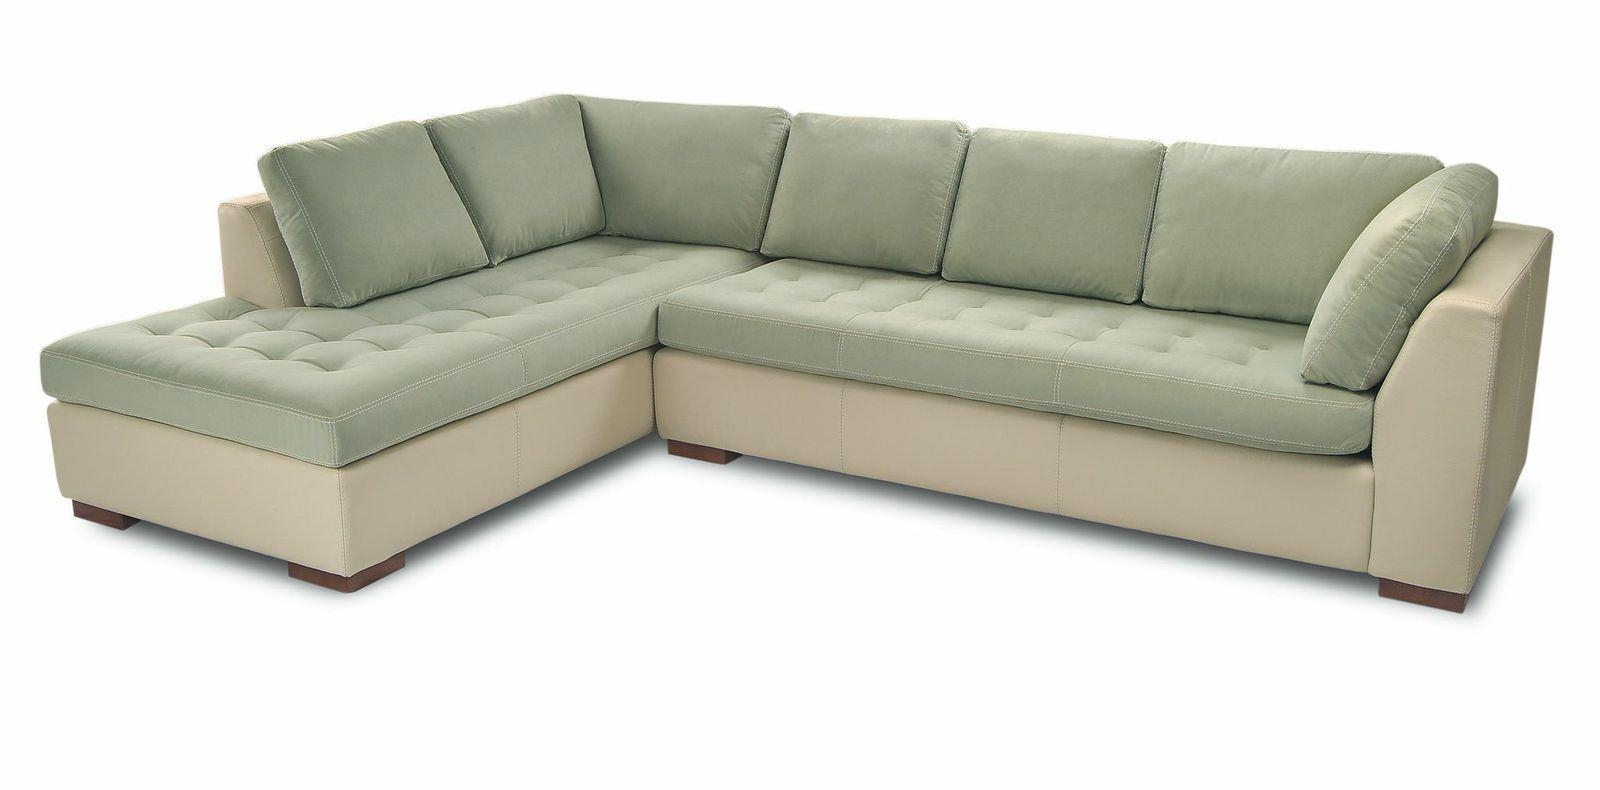 ▻ Sofa : 37 Lovely Sofa Covers For Sectionals Patio Furniture In Cat Proof Sofas (Image 1 of 20)